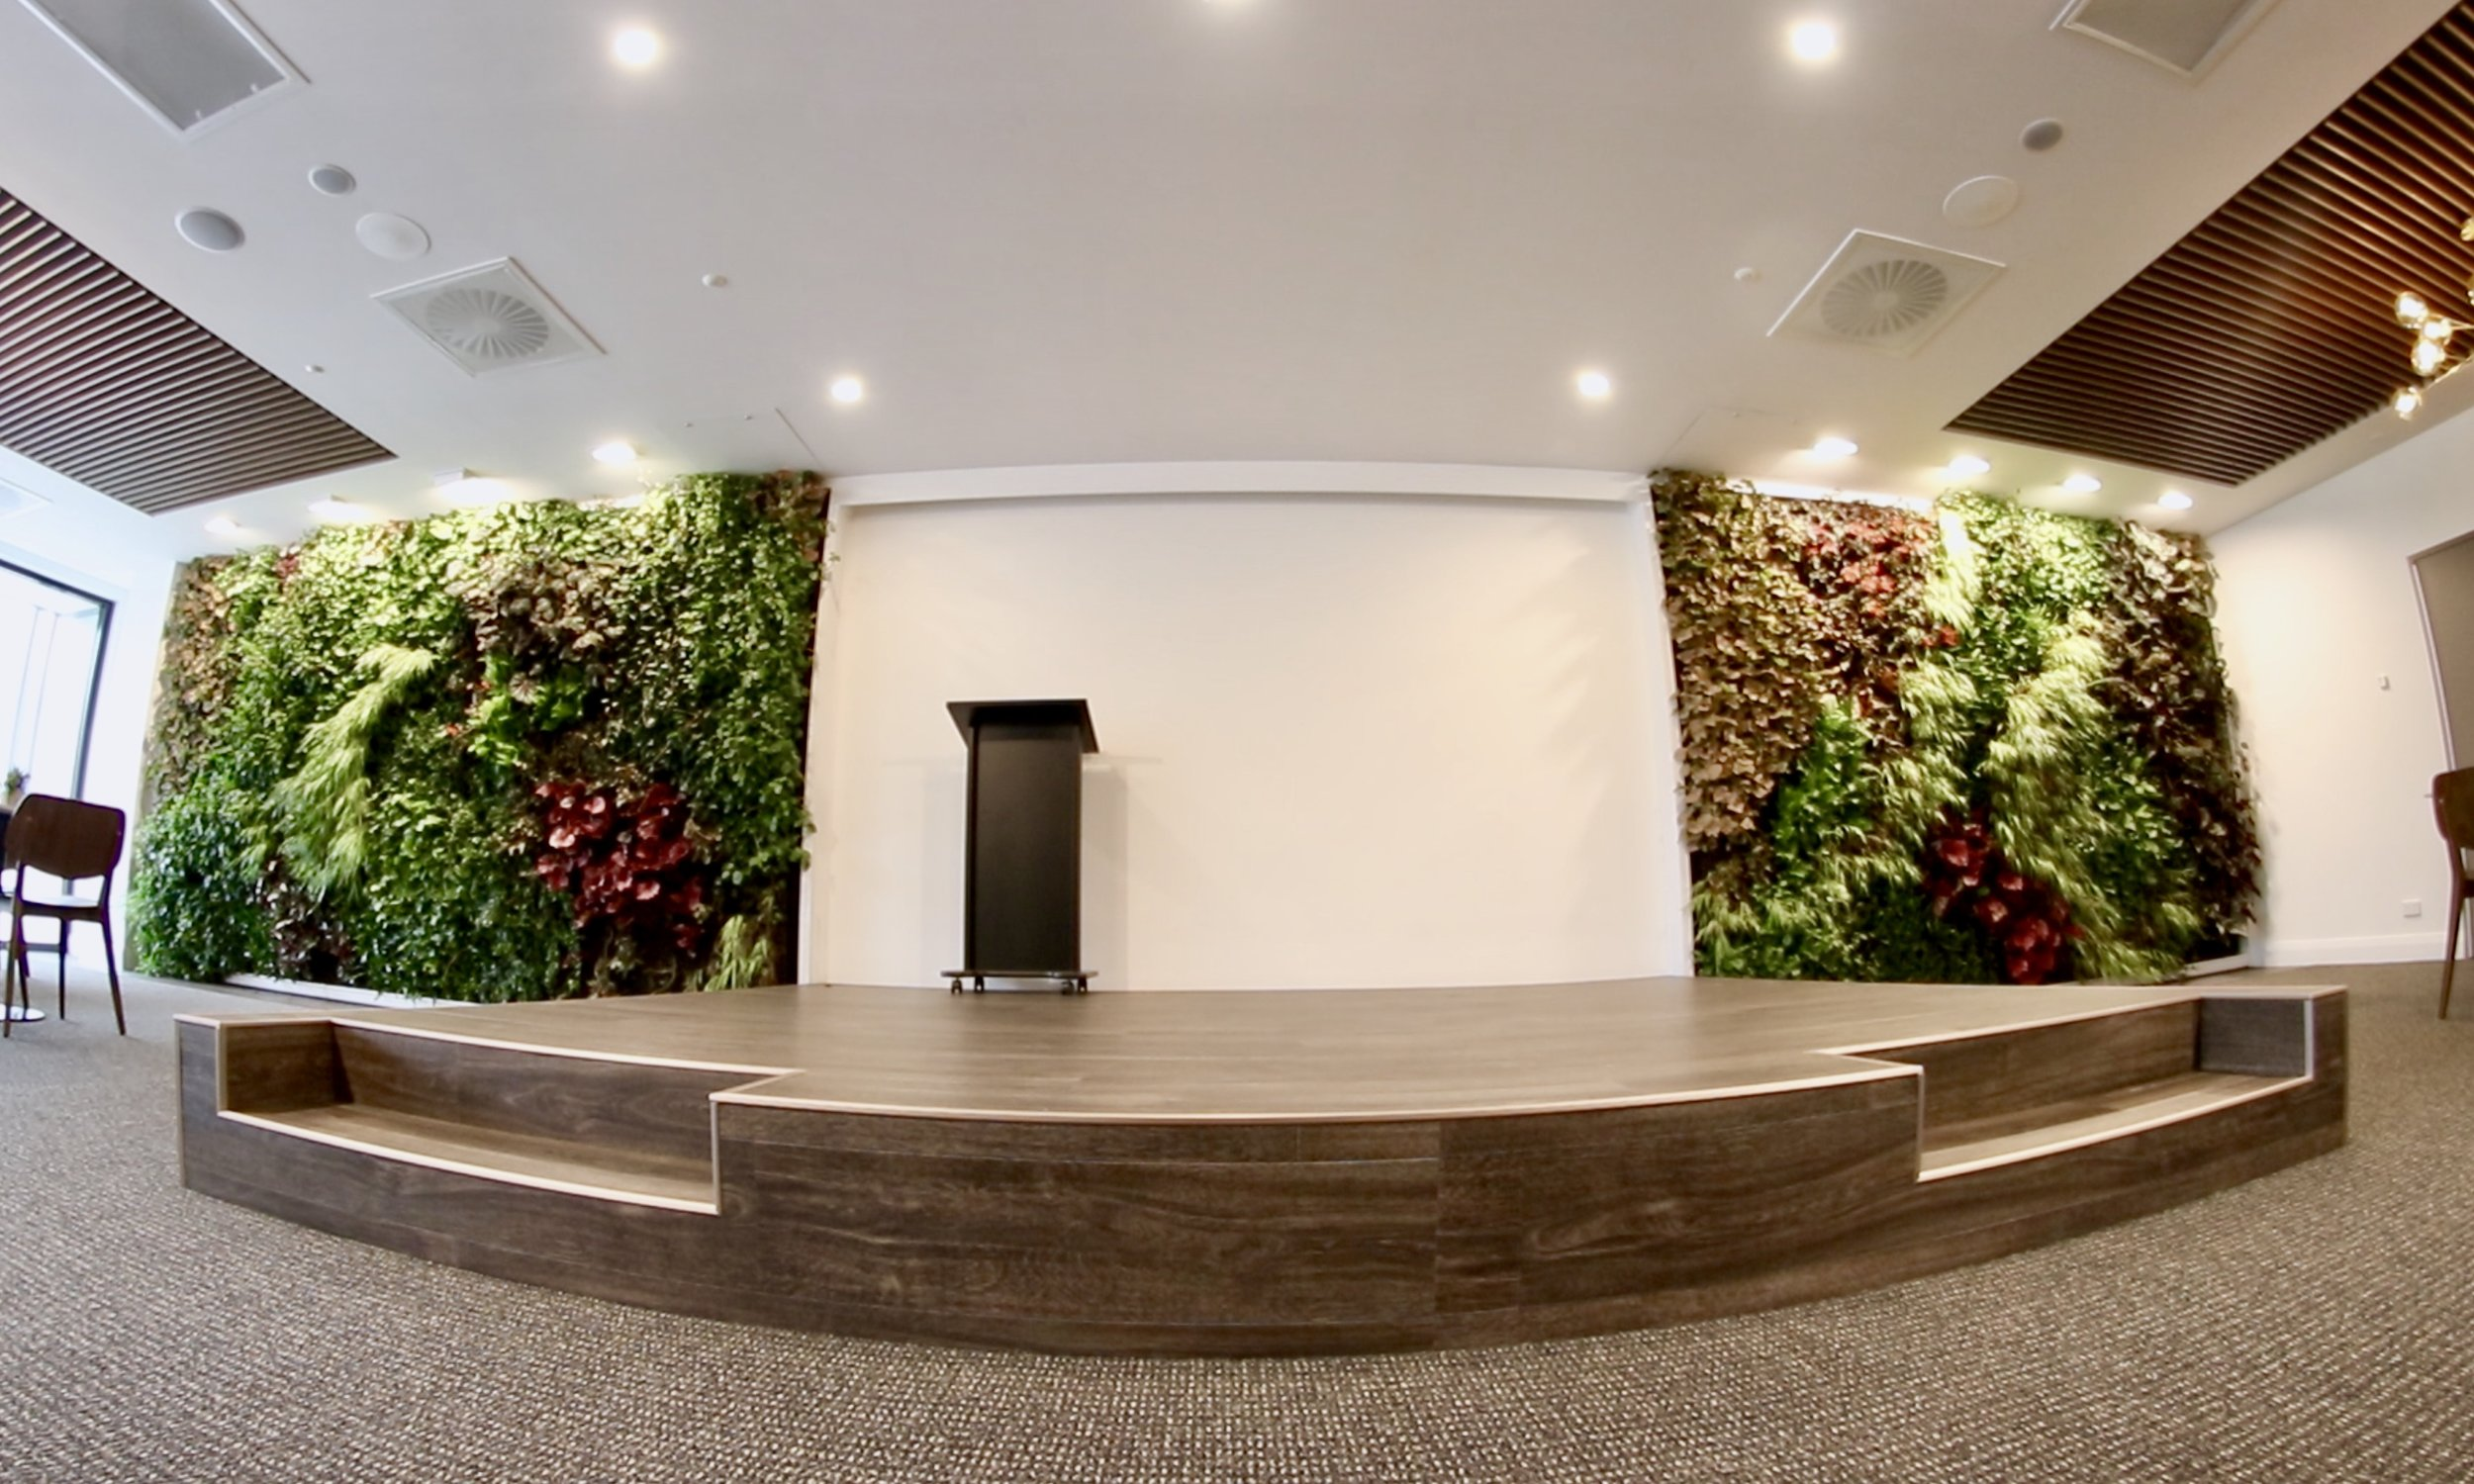 SMINational_LivingWall_Ramsay HealthCare_St Leonards (5).png